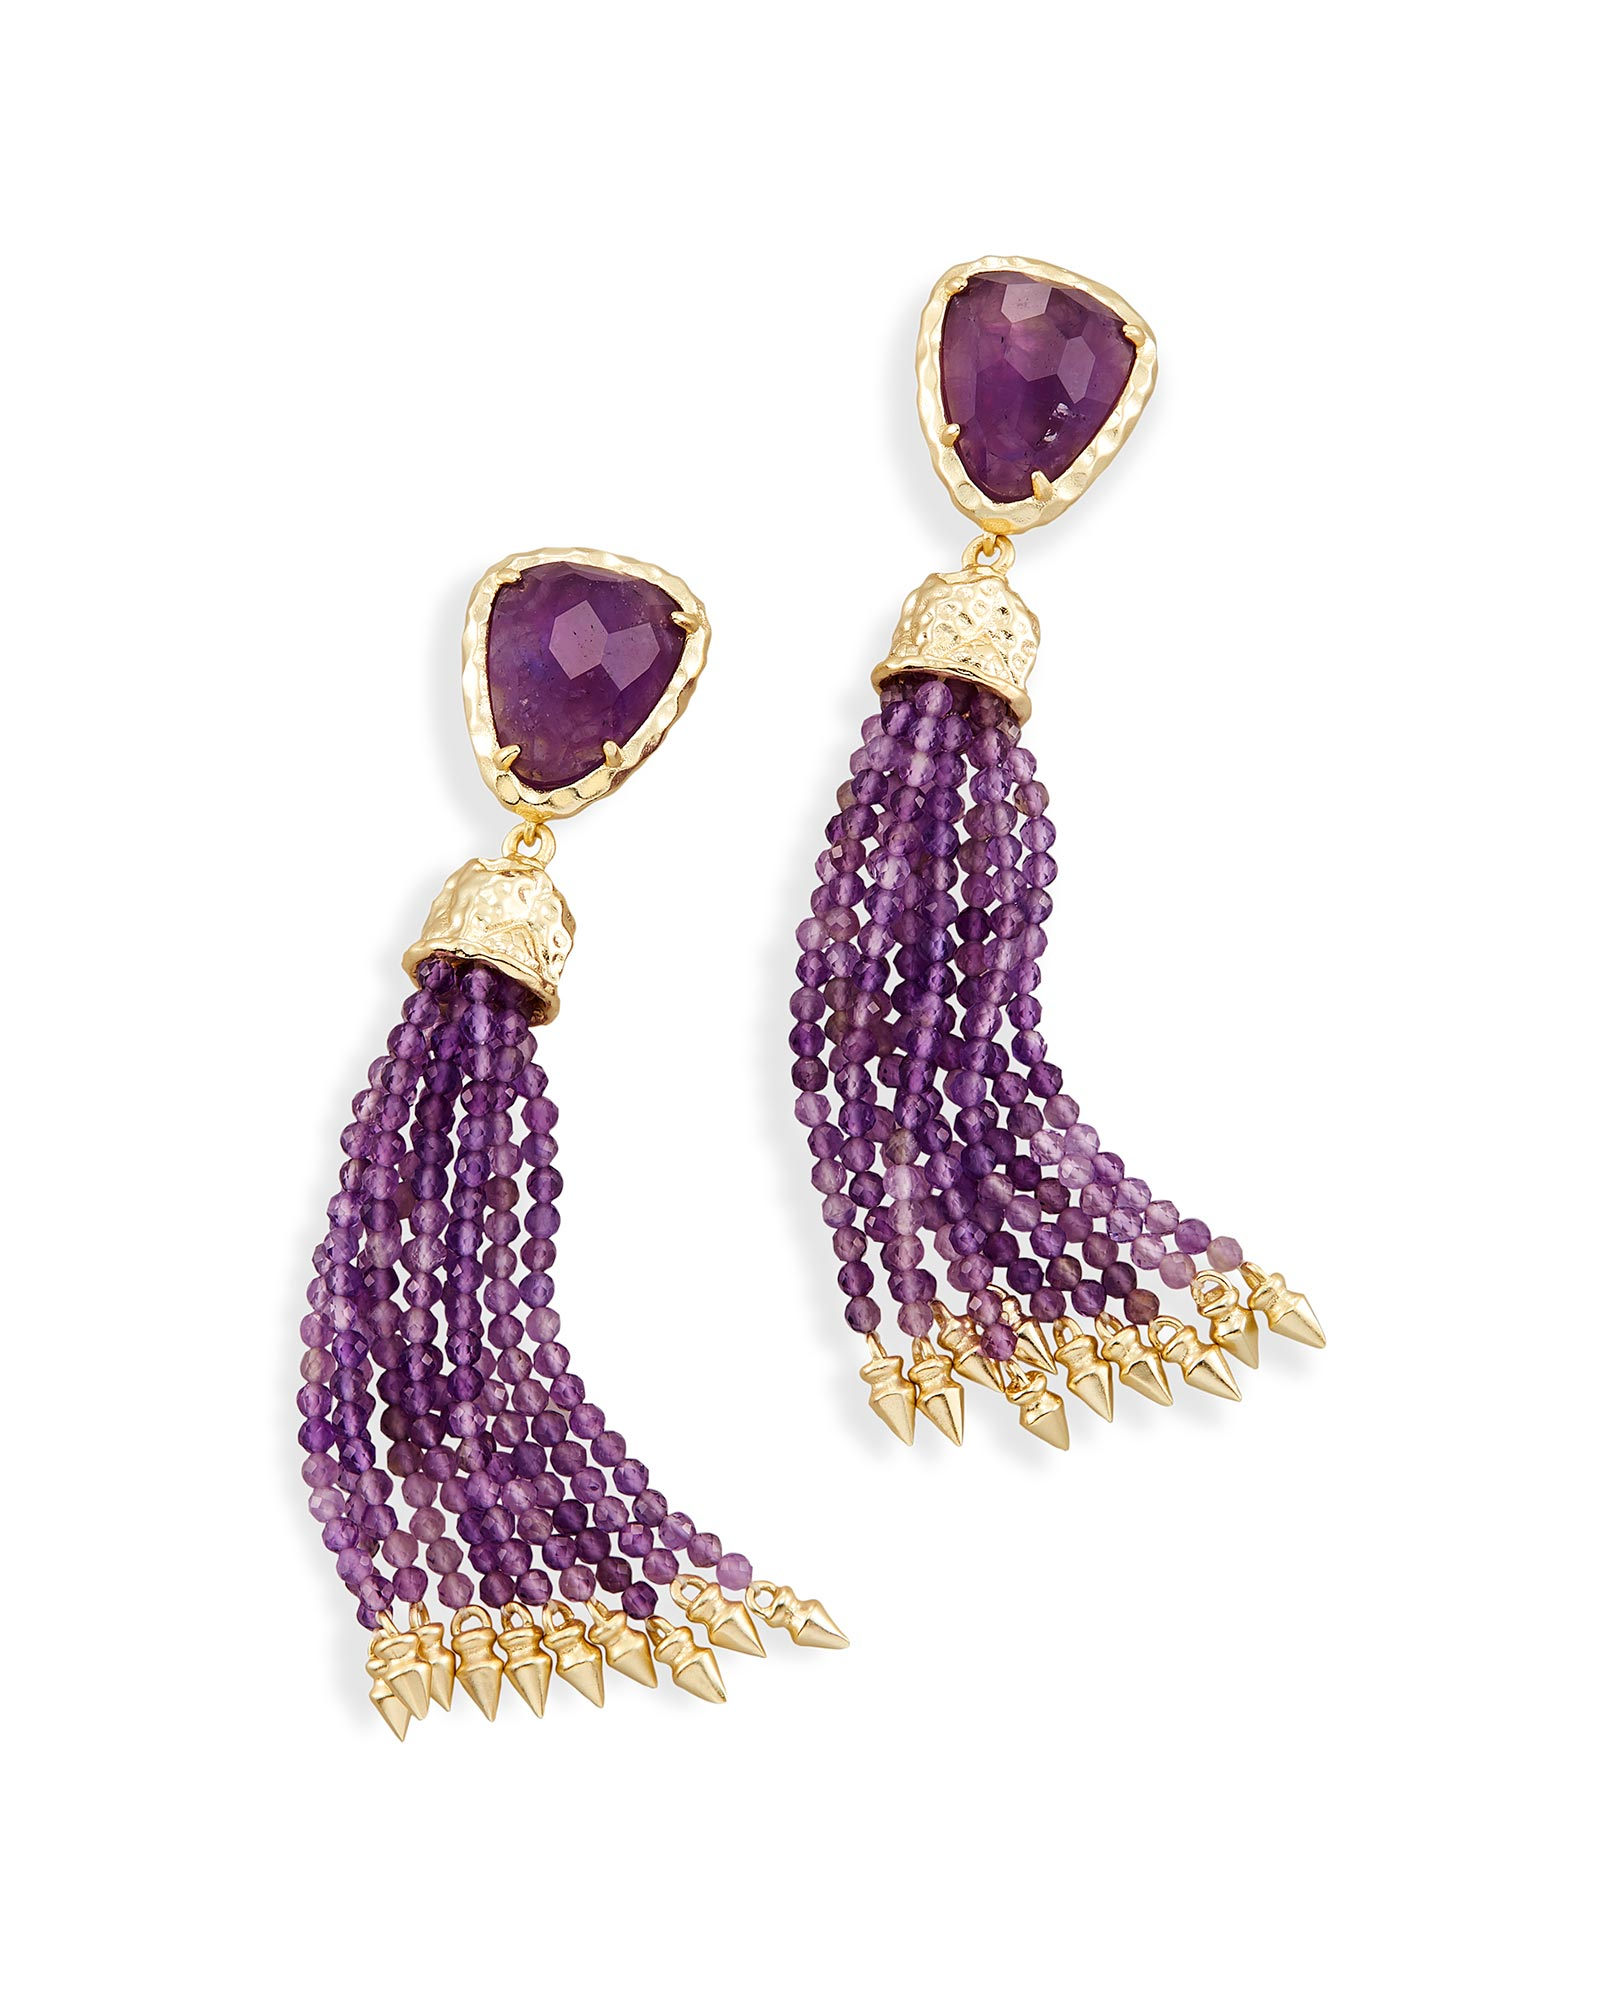 kendra-scott-blossom-gold-tassel-earrings-in-amethyst_00_default_lg